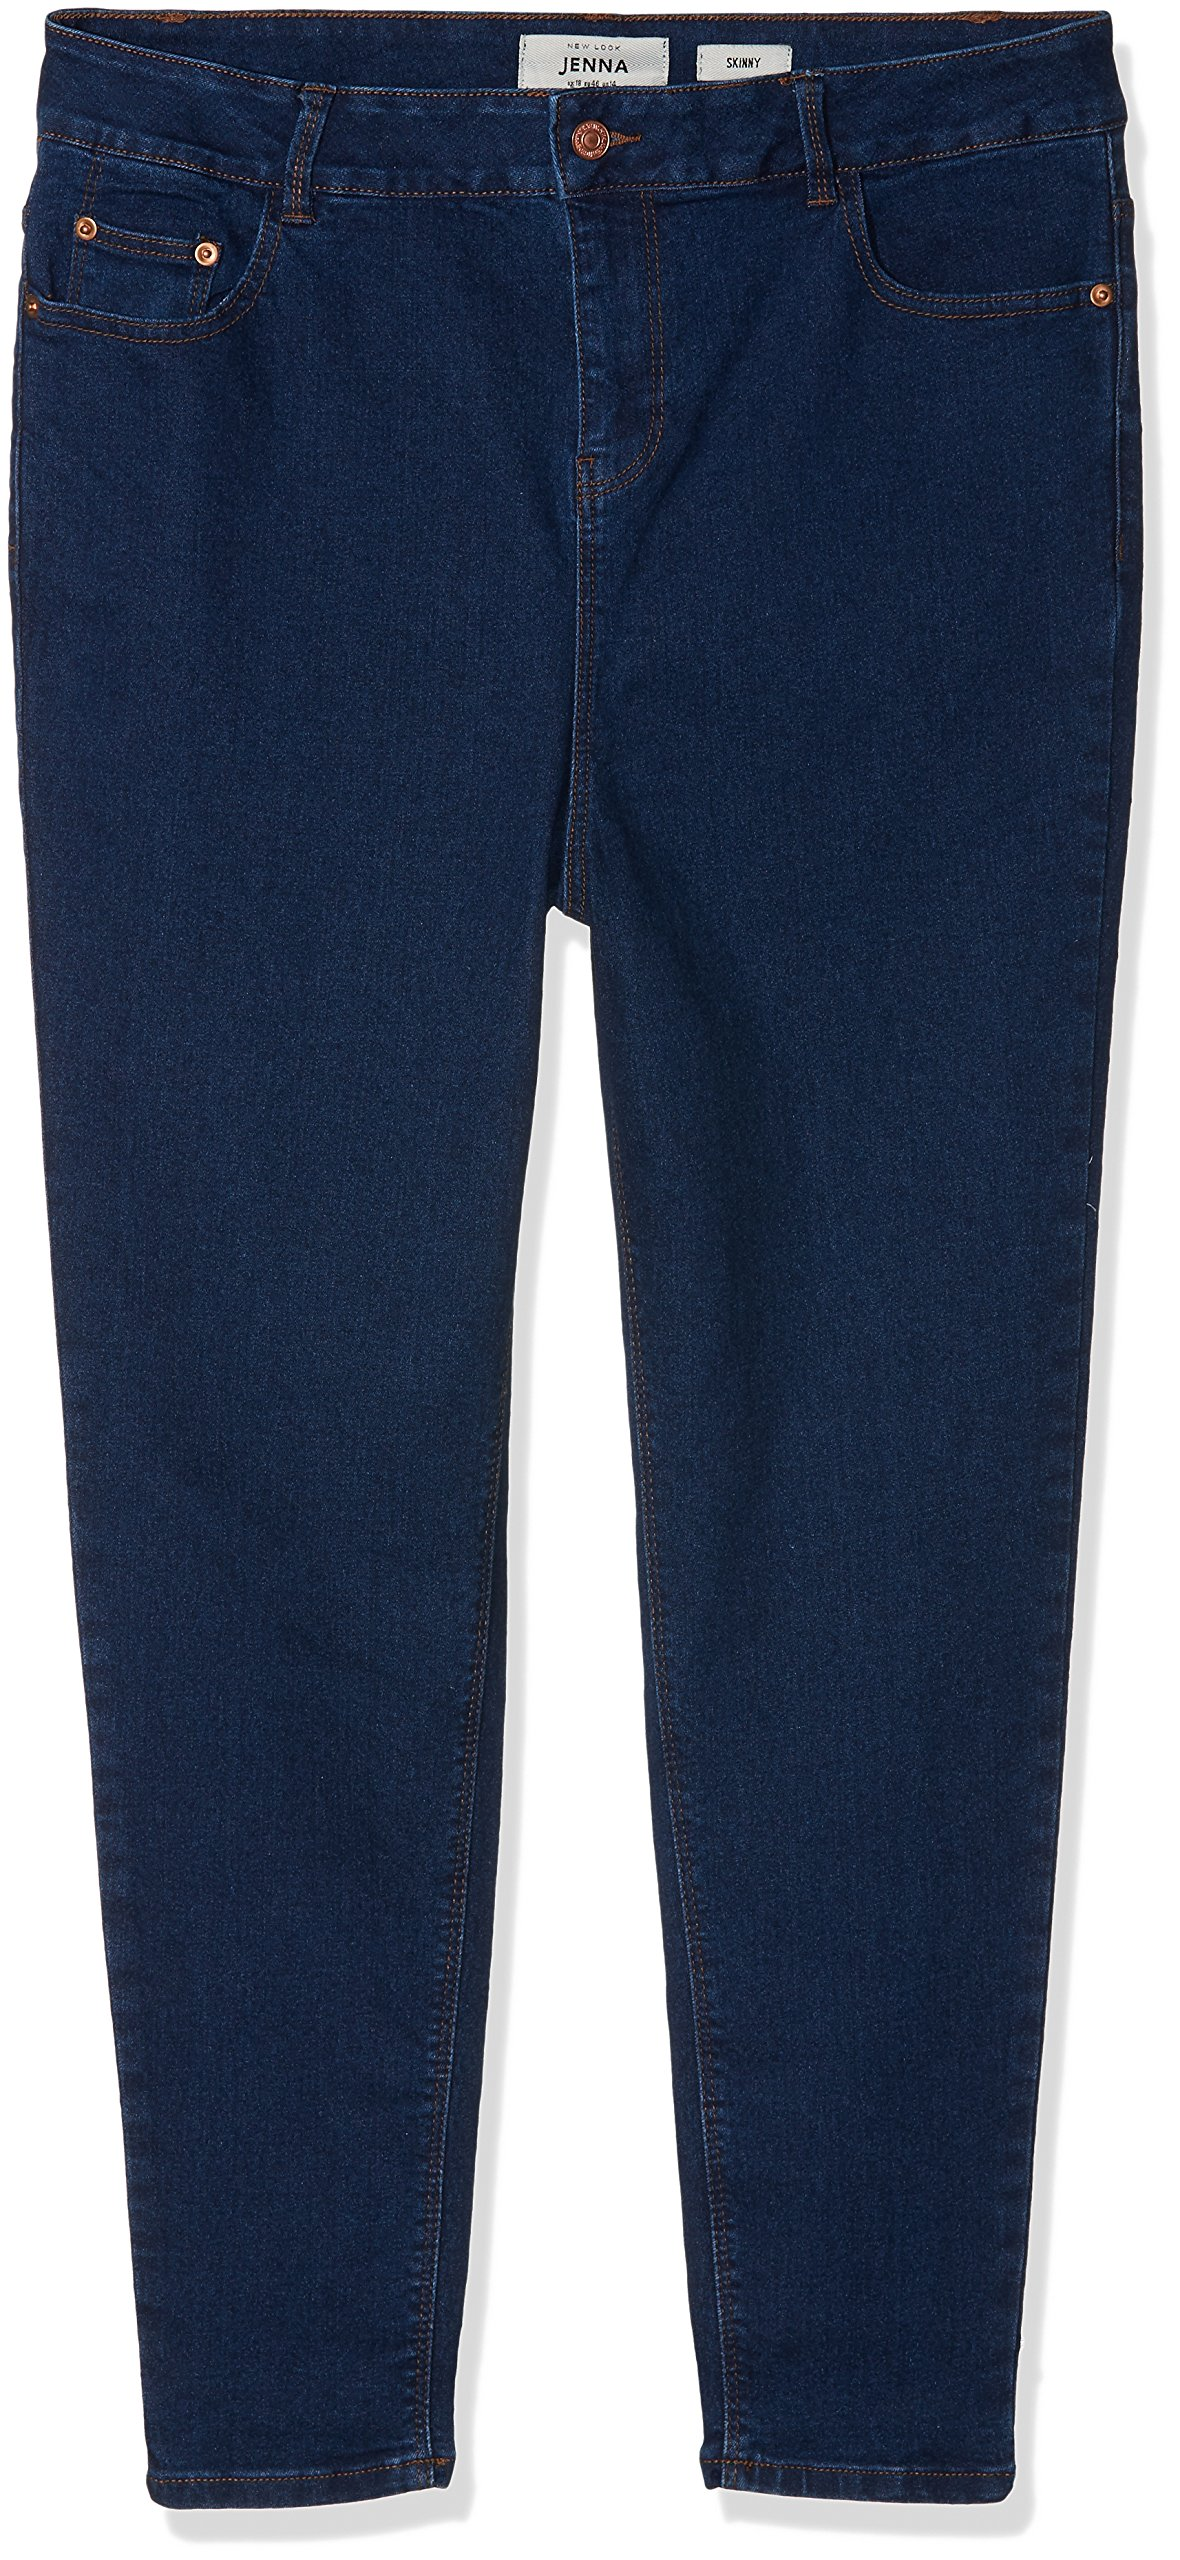 New Look Women's Skinny Jeans 40